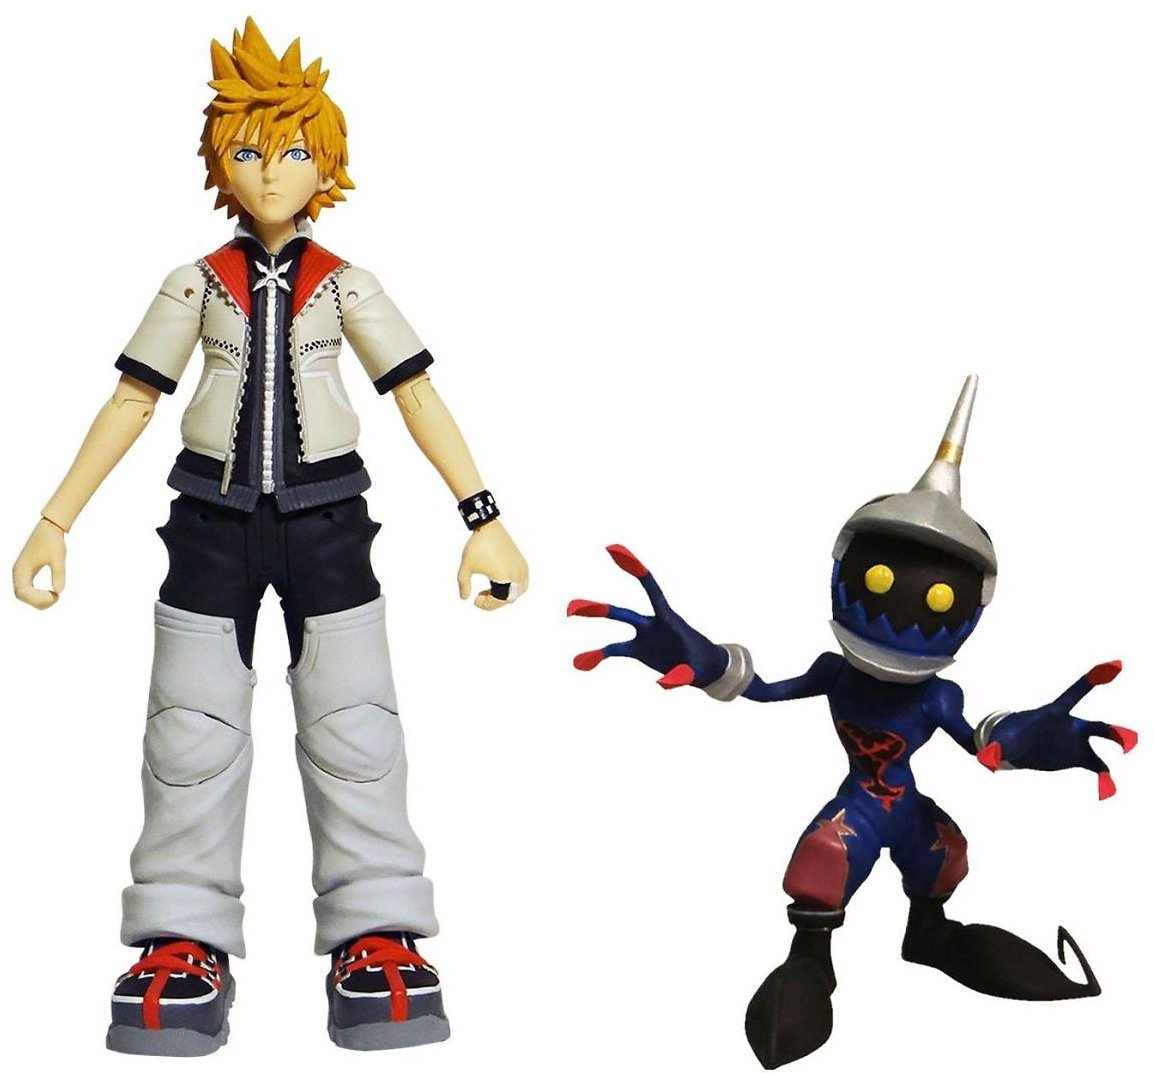 Kingdom Hearts Series 2 Roxas and Soldier Action Figure | GameStop